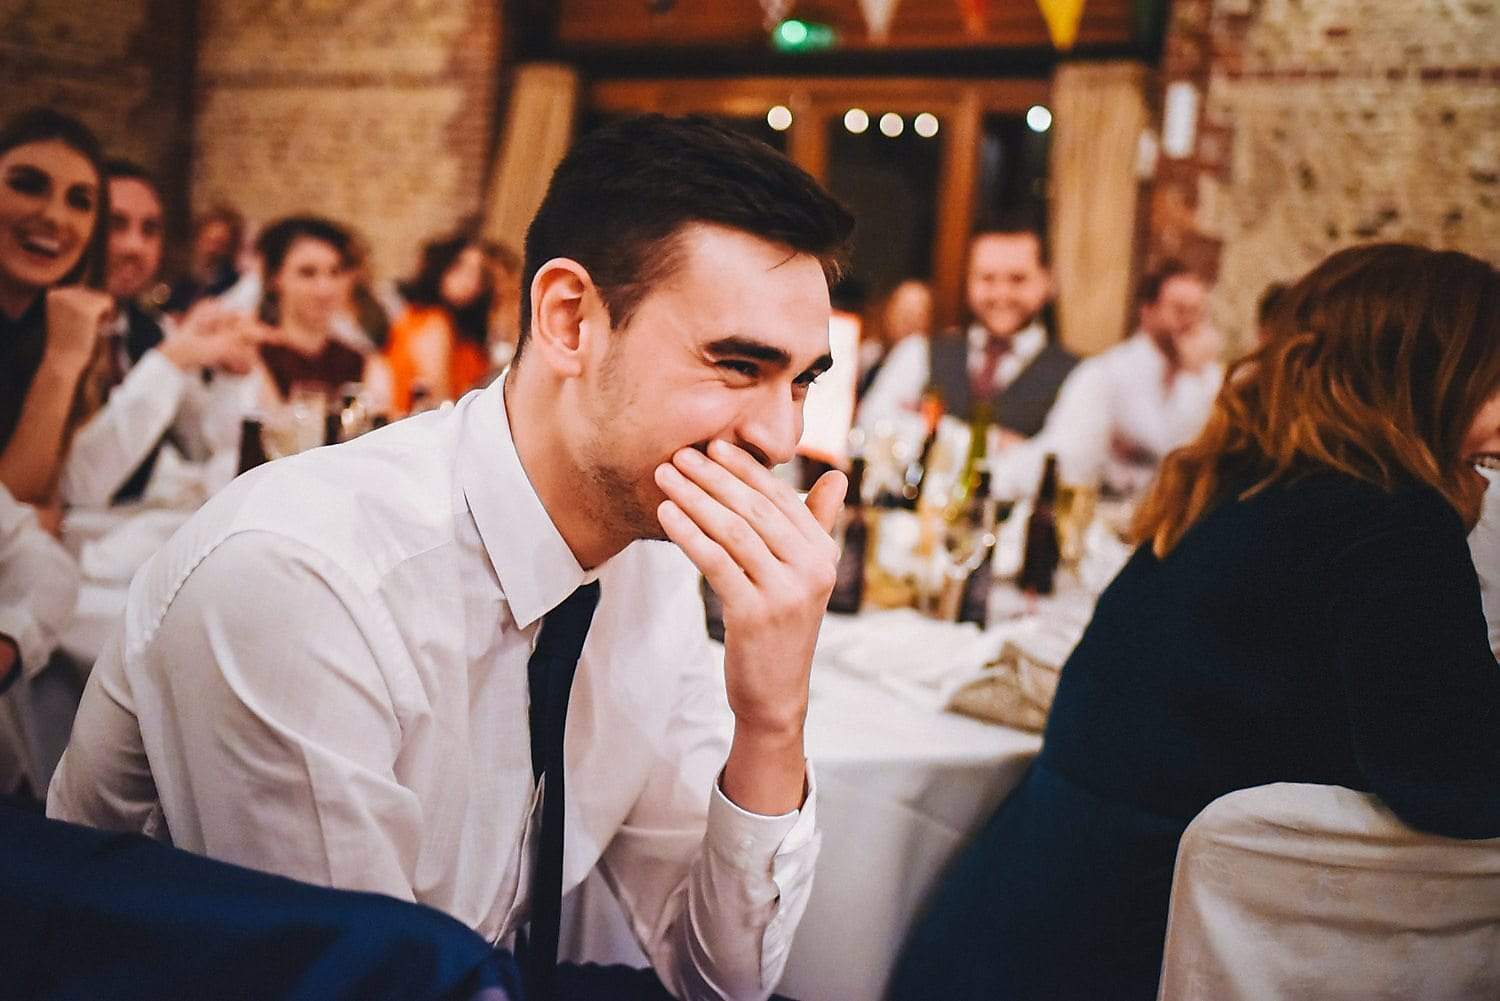 A male guest leans forward and laughs during the speeches